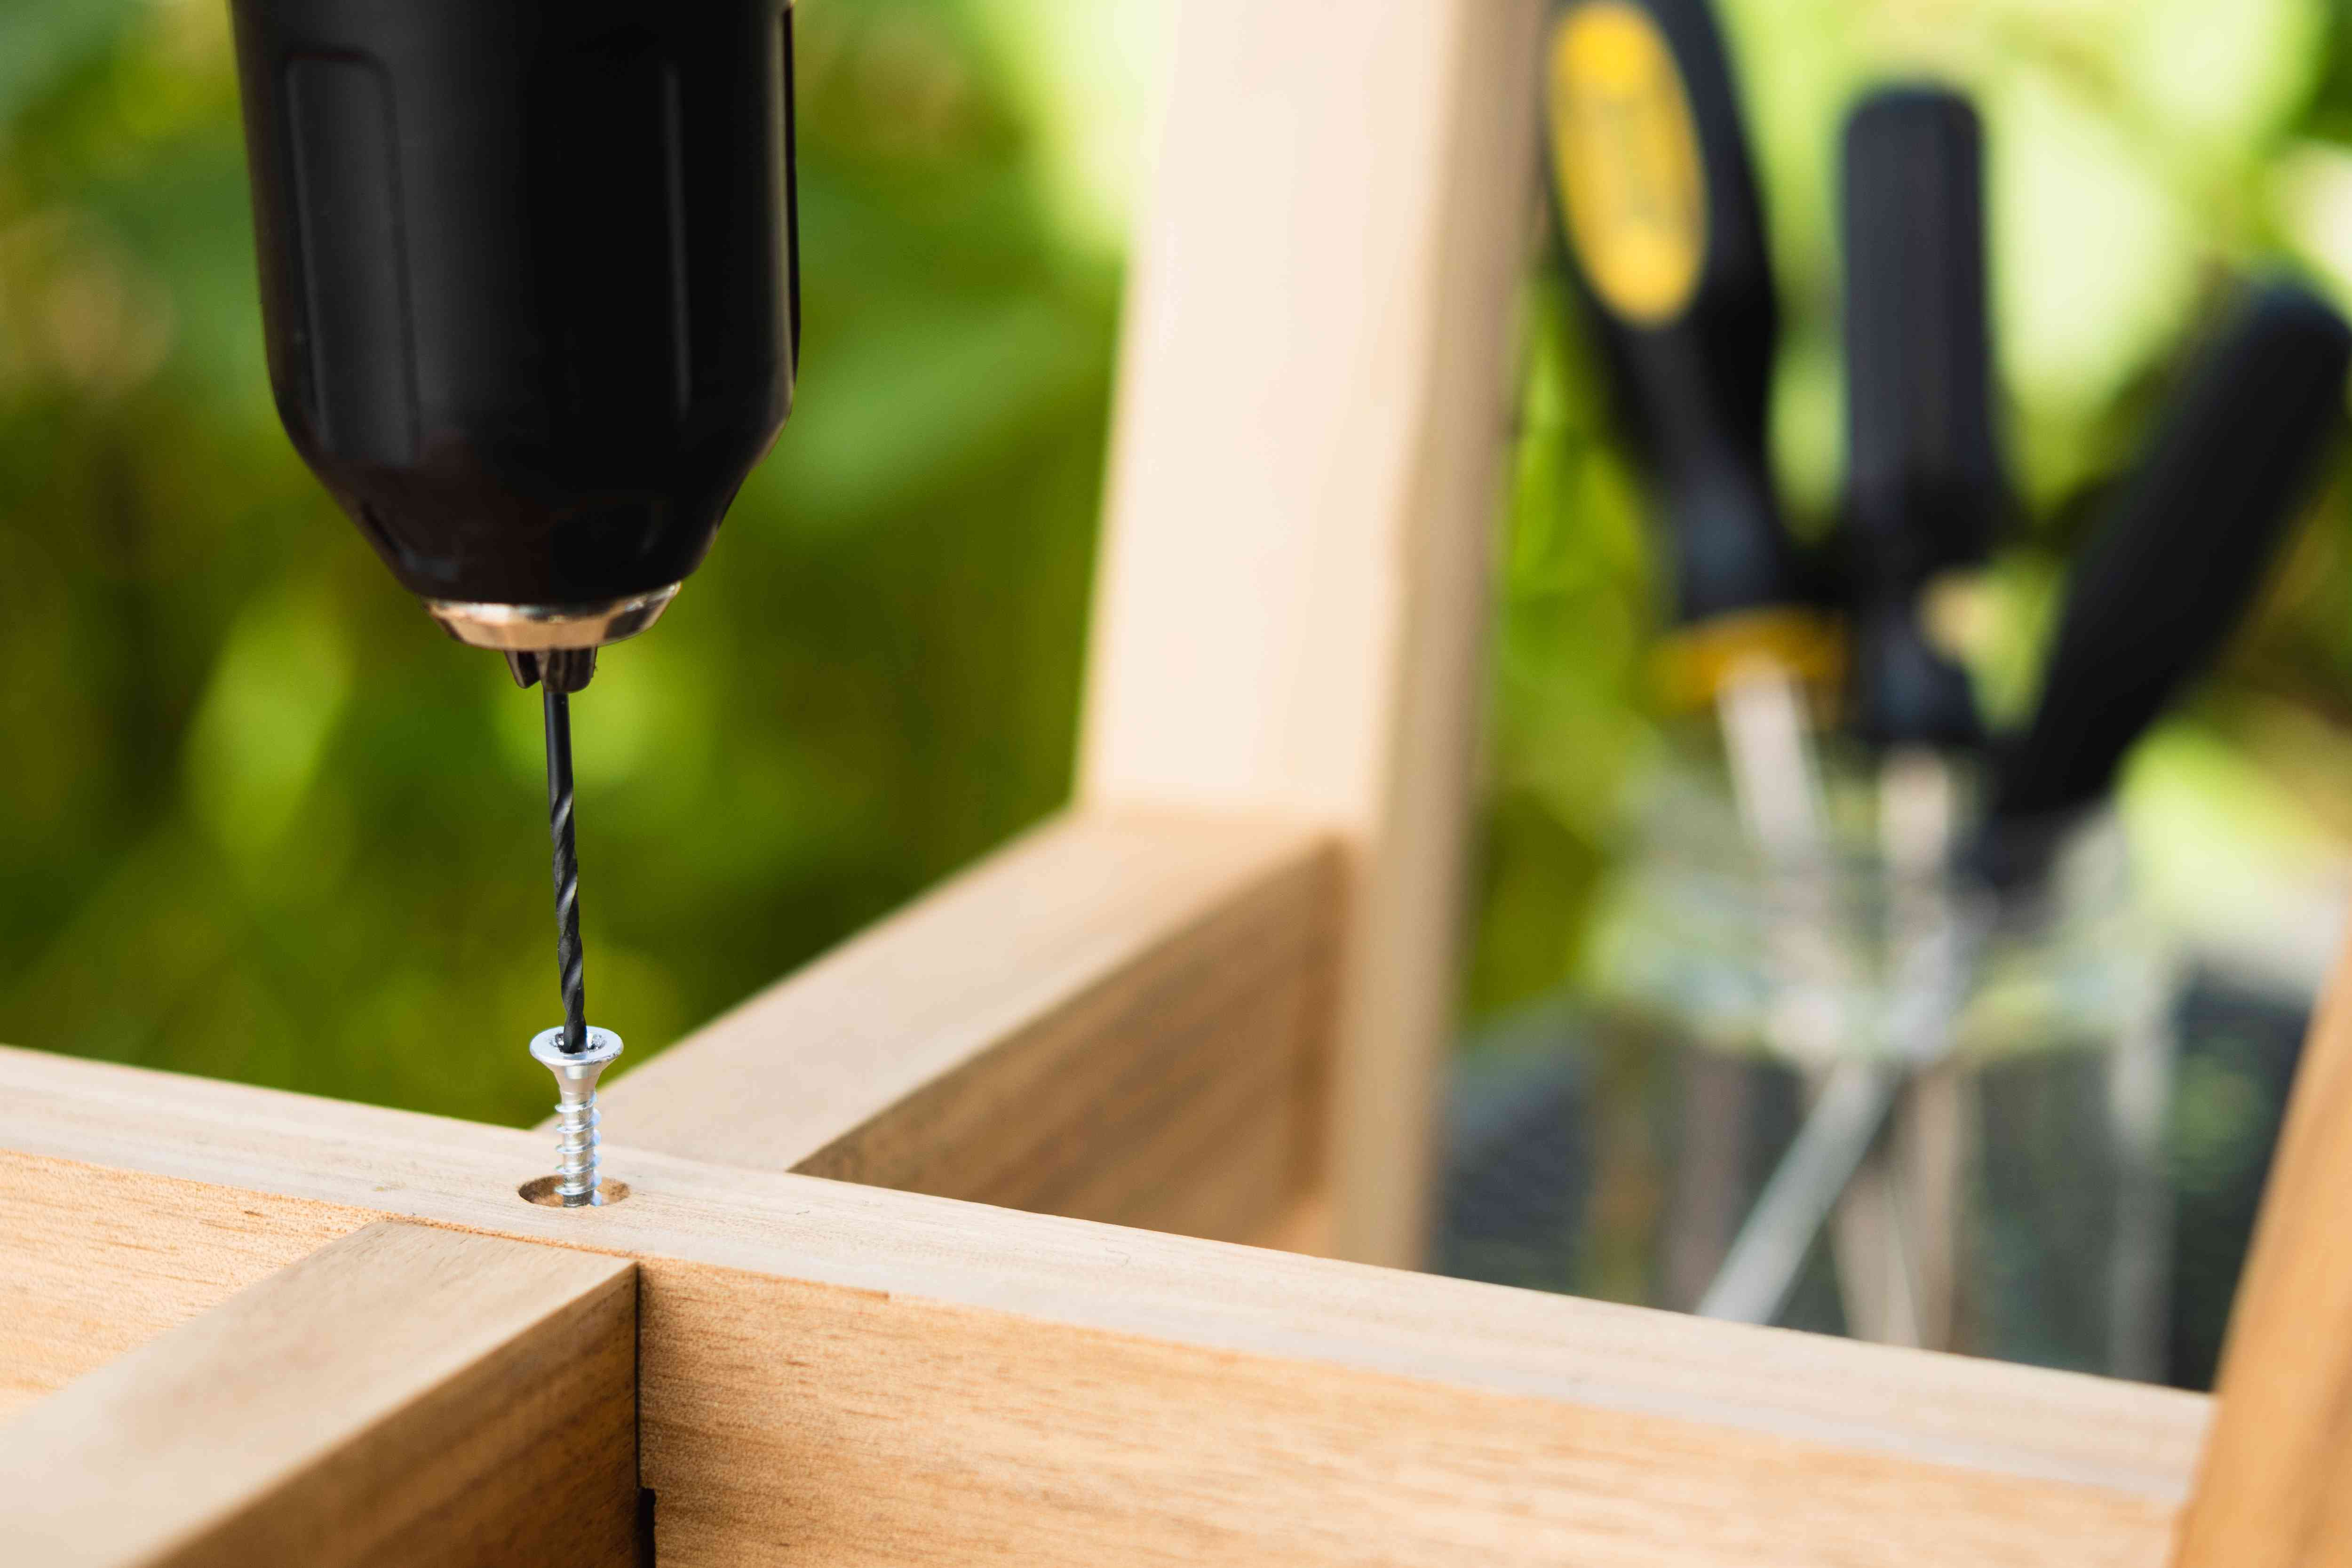 Electric drill drilling into stripped screw in wooden fixture